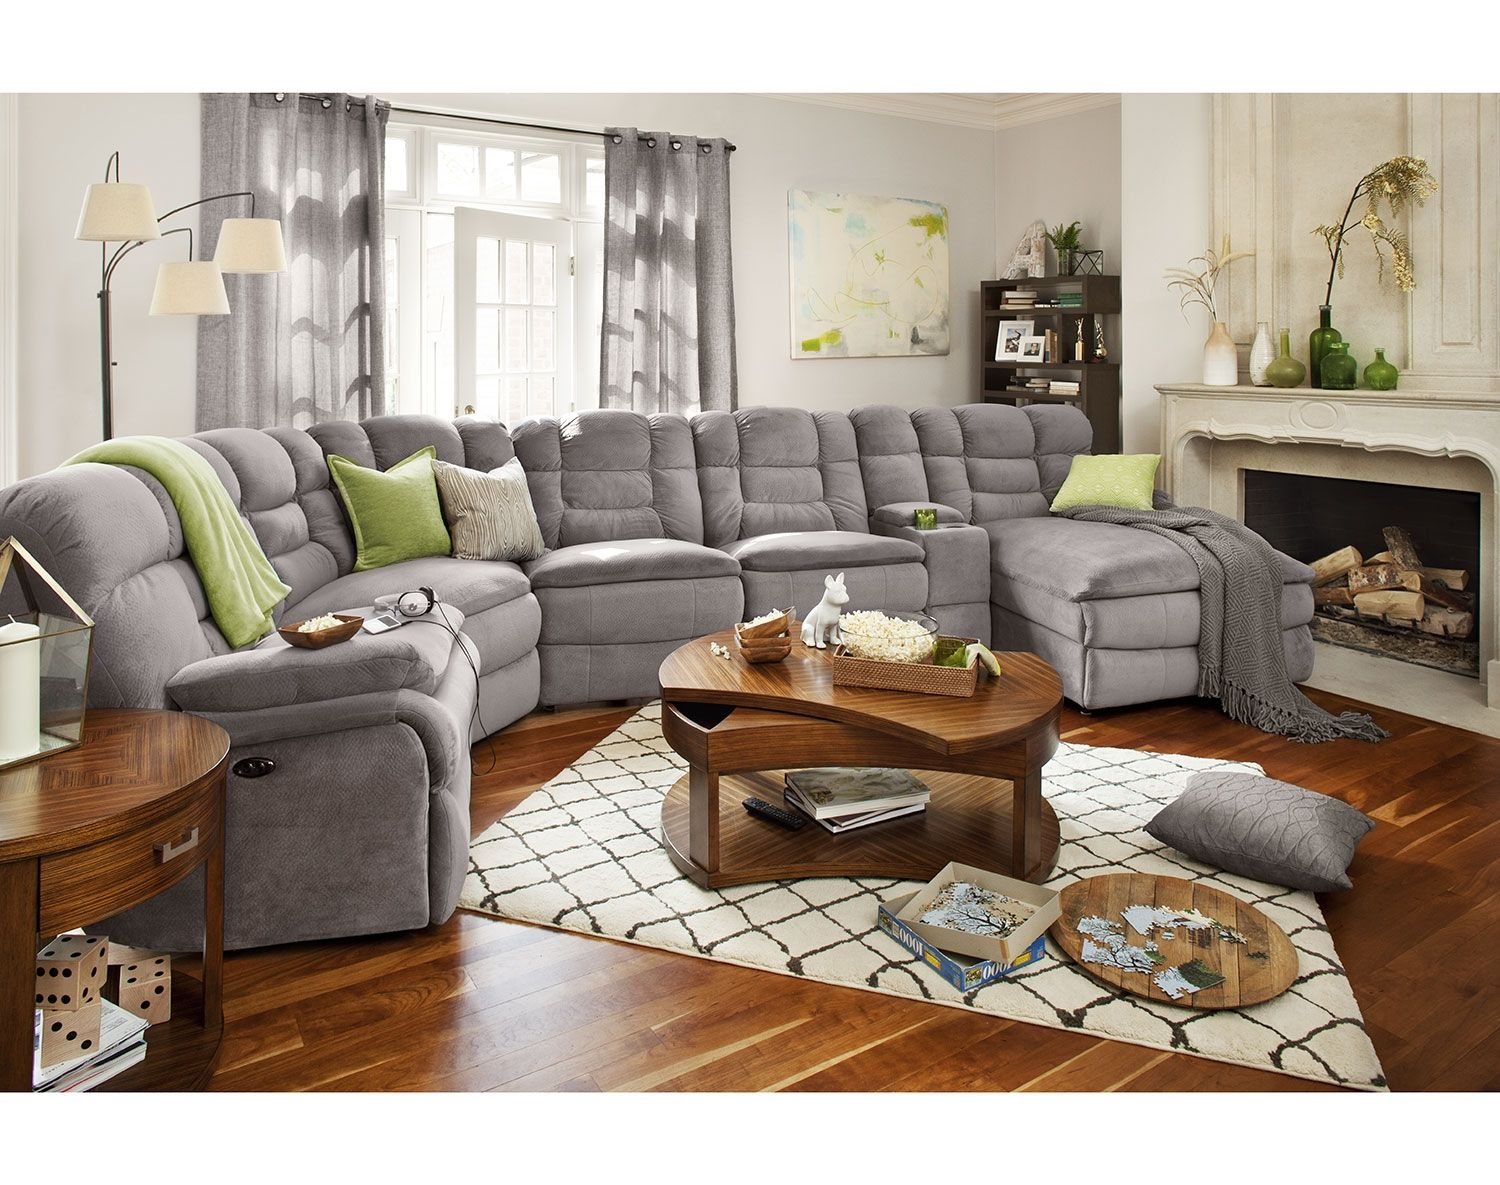 The Big Softie Ii Collection American Signature Furniture intended for American Signature Living Room Sets